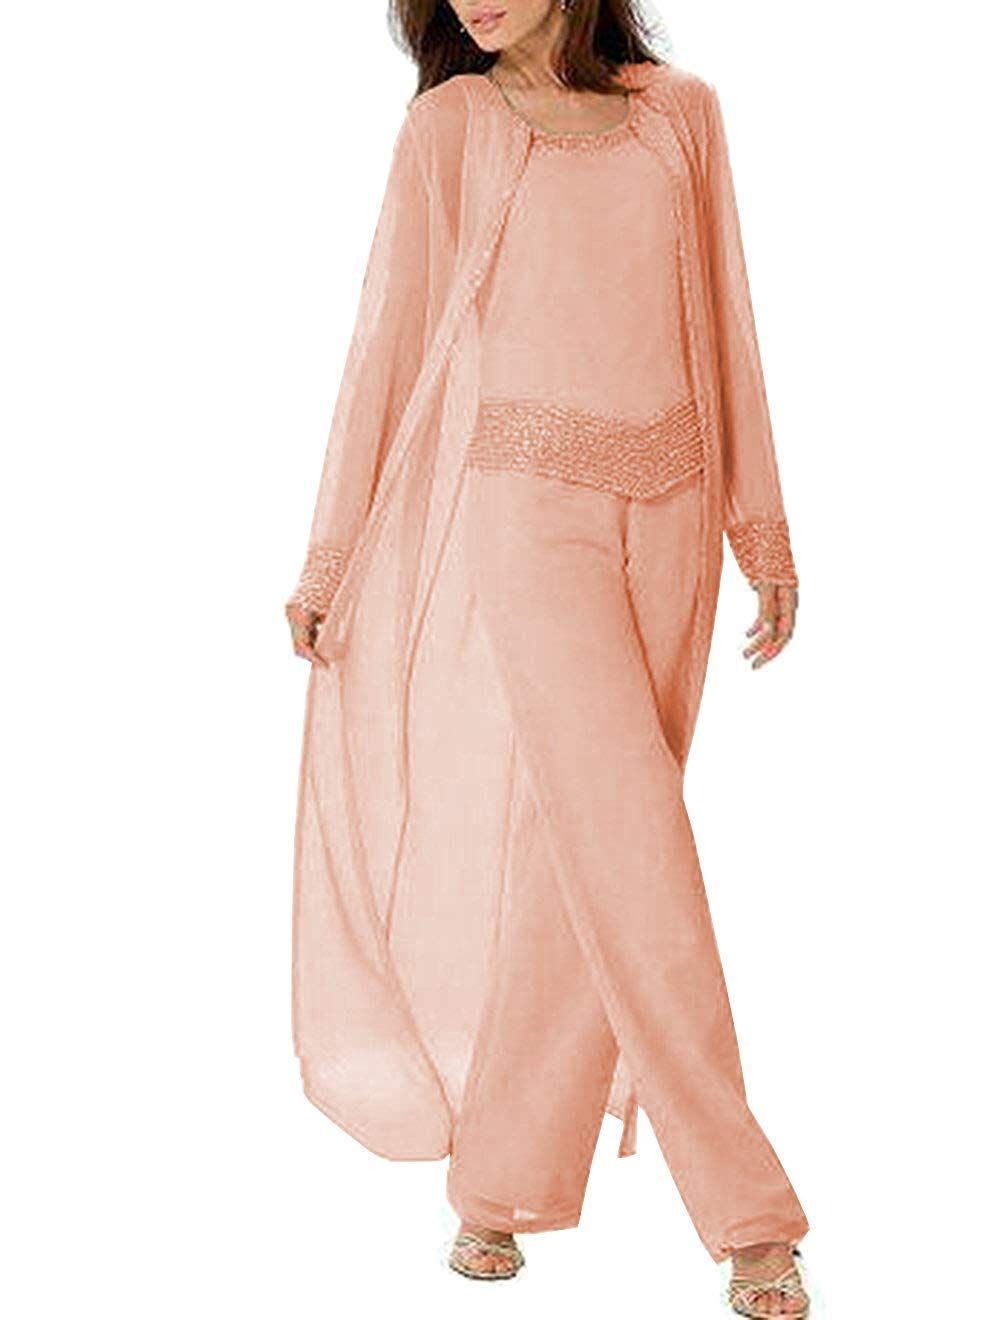 Fitty Lell Womens Chiffon Beaded Mother of The Bride Dresses Pants Suits for Wedding Groom Evening Dress